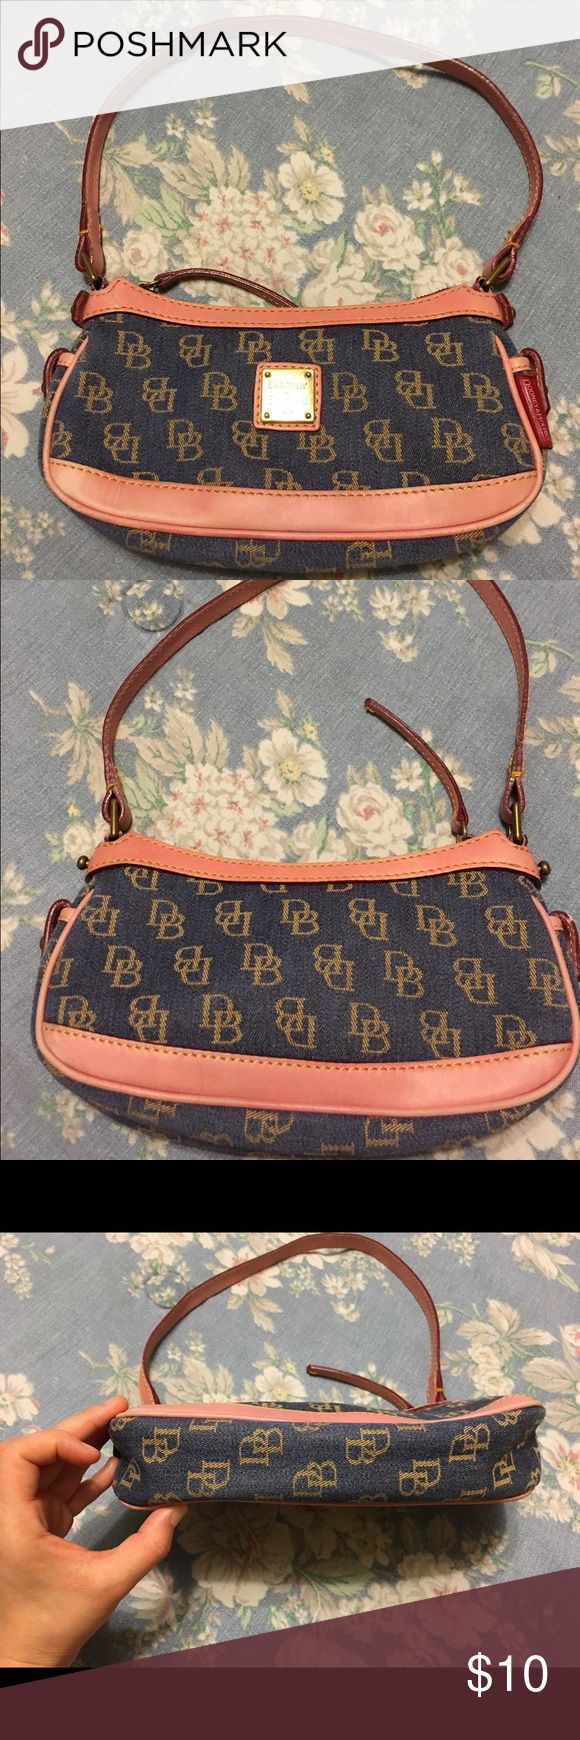 Small Dooney and Bourke denim handbag. Small Dooney and Bourke denim handbag. Handbag is dirty from inside, clean from outside. There is discoloration to the leather, leather is pink. Price is firm. Dooney & Bourke Bags